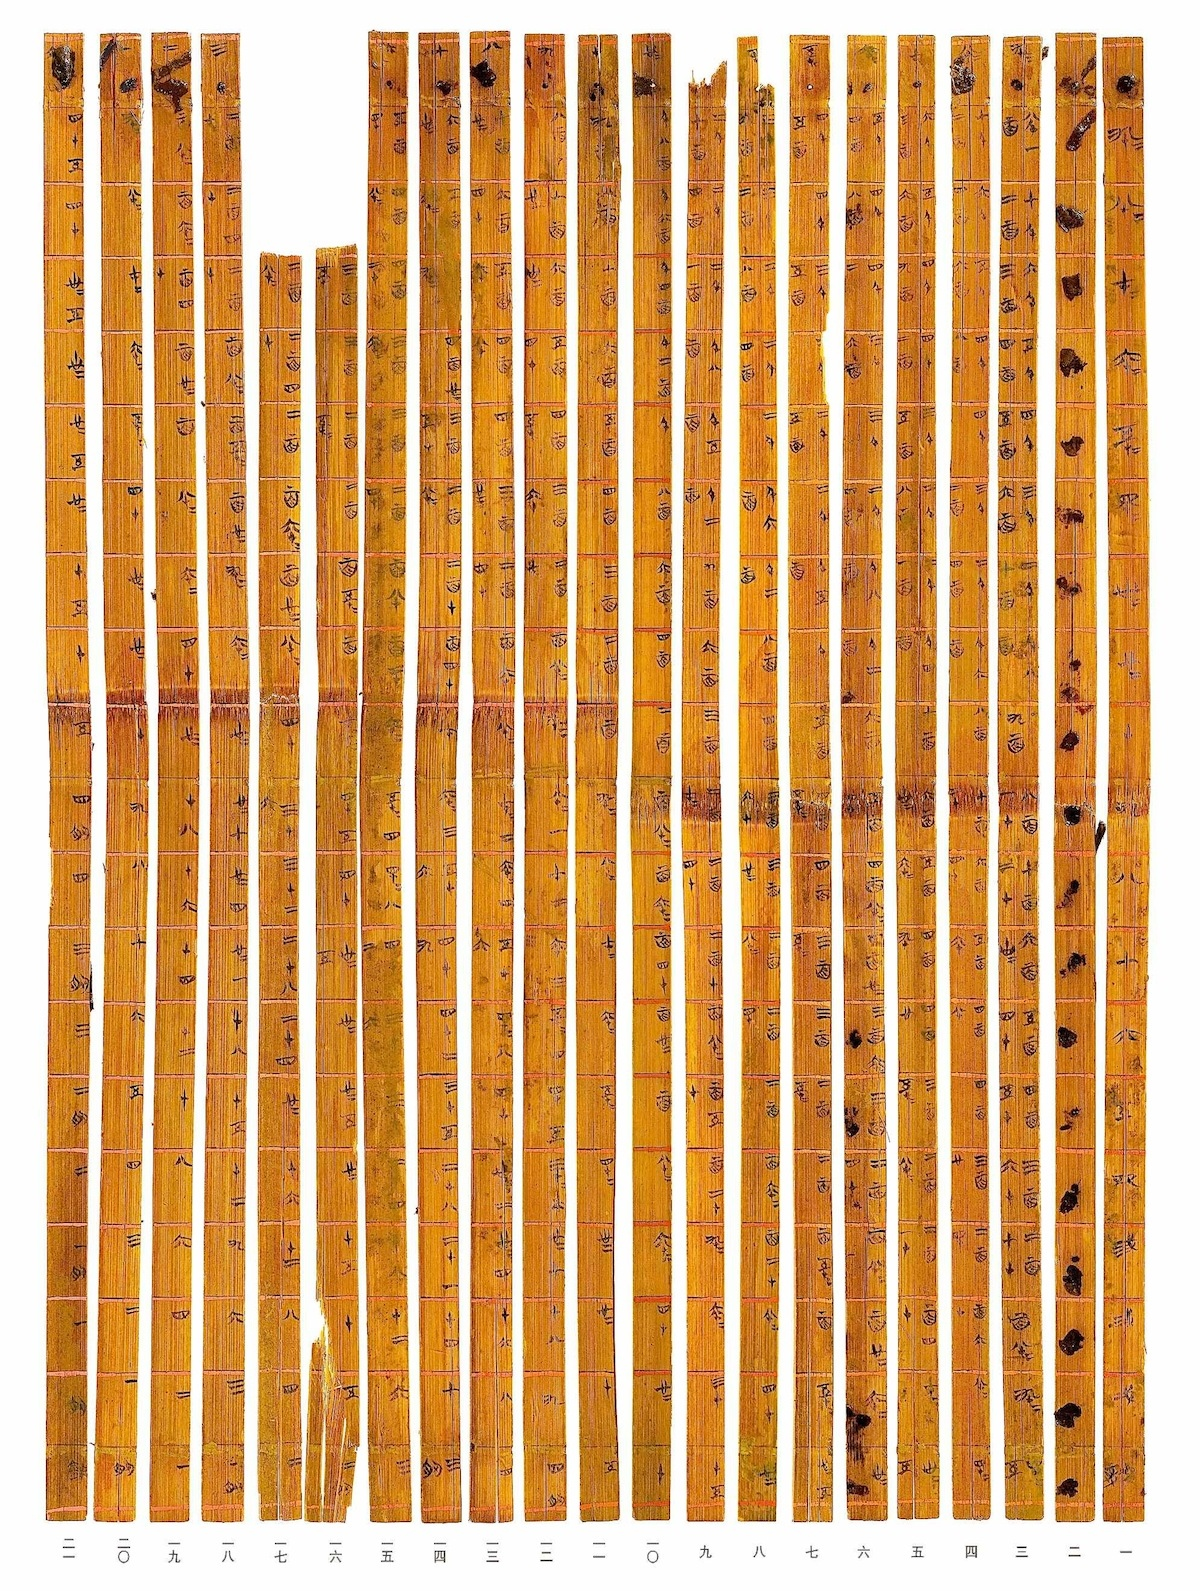 The history blog blog archive worlds oldest times table found researchers from tsinghua university in beijing have discovered the worlds oldest decimal multiplication table on 21 strips gamestrikefo Gallery